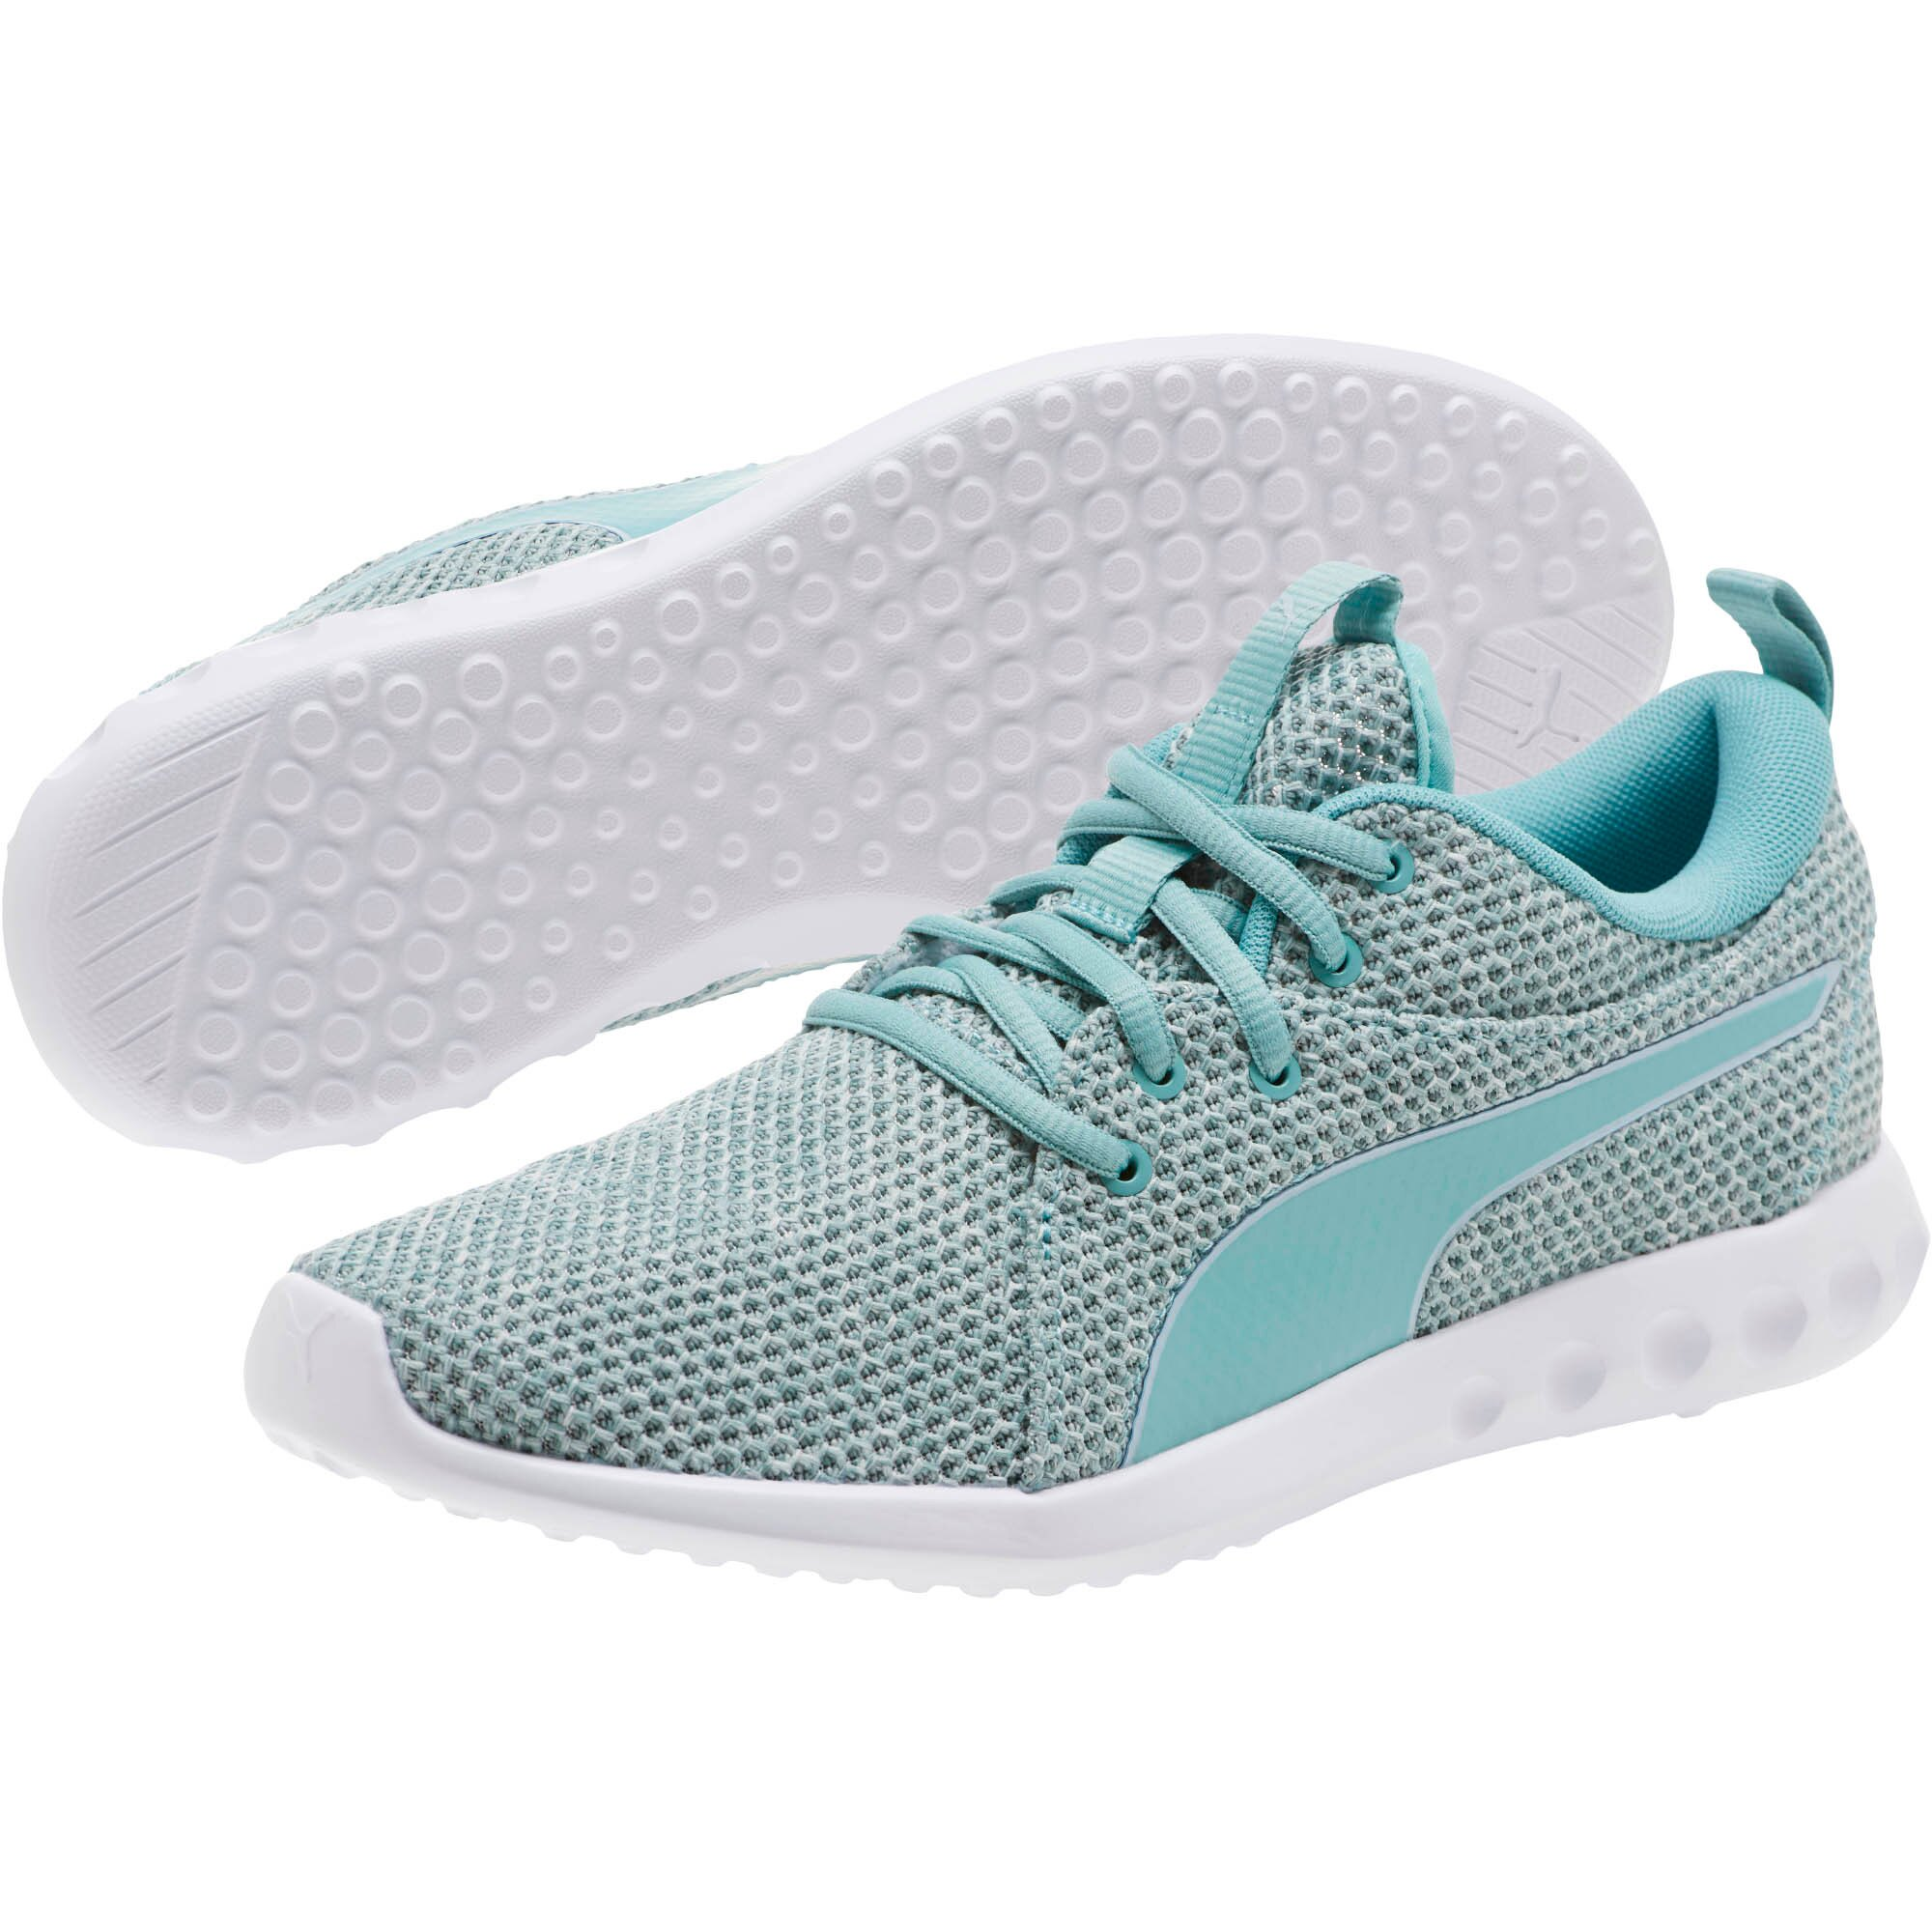 d62b0688d8a4f2 Official Puma Store  PUMA Carson 2 Nature Knit Women s Running Shoes ...